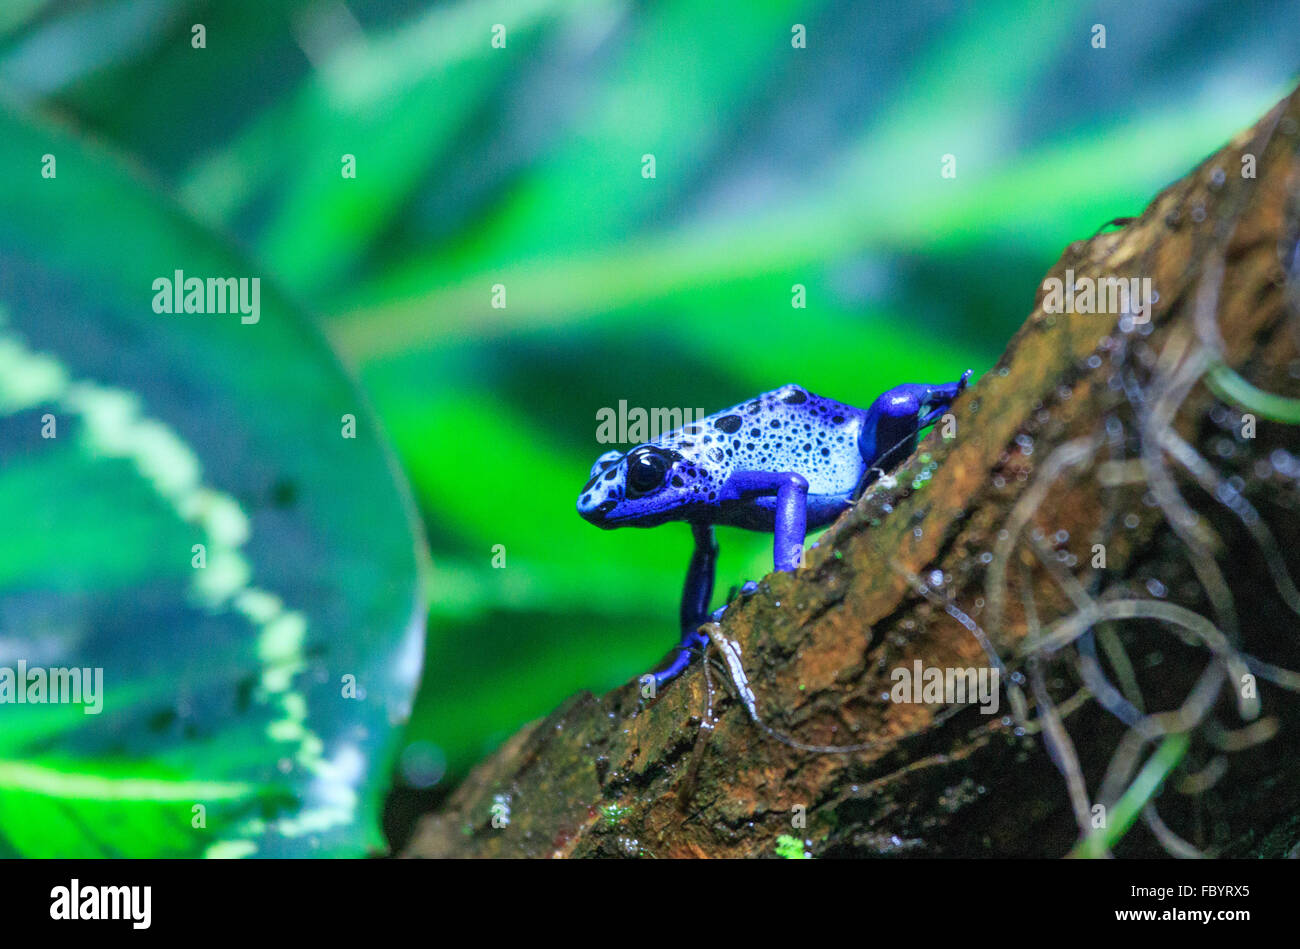 Blue spotted tree frog Stock Photo